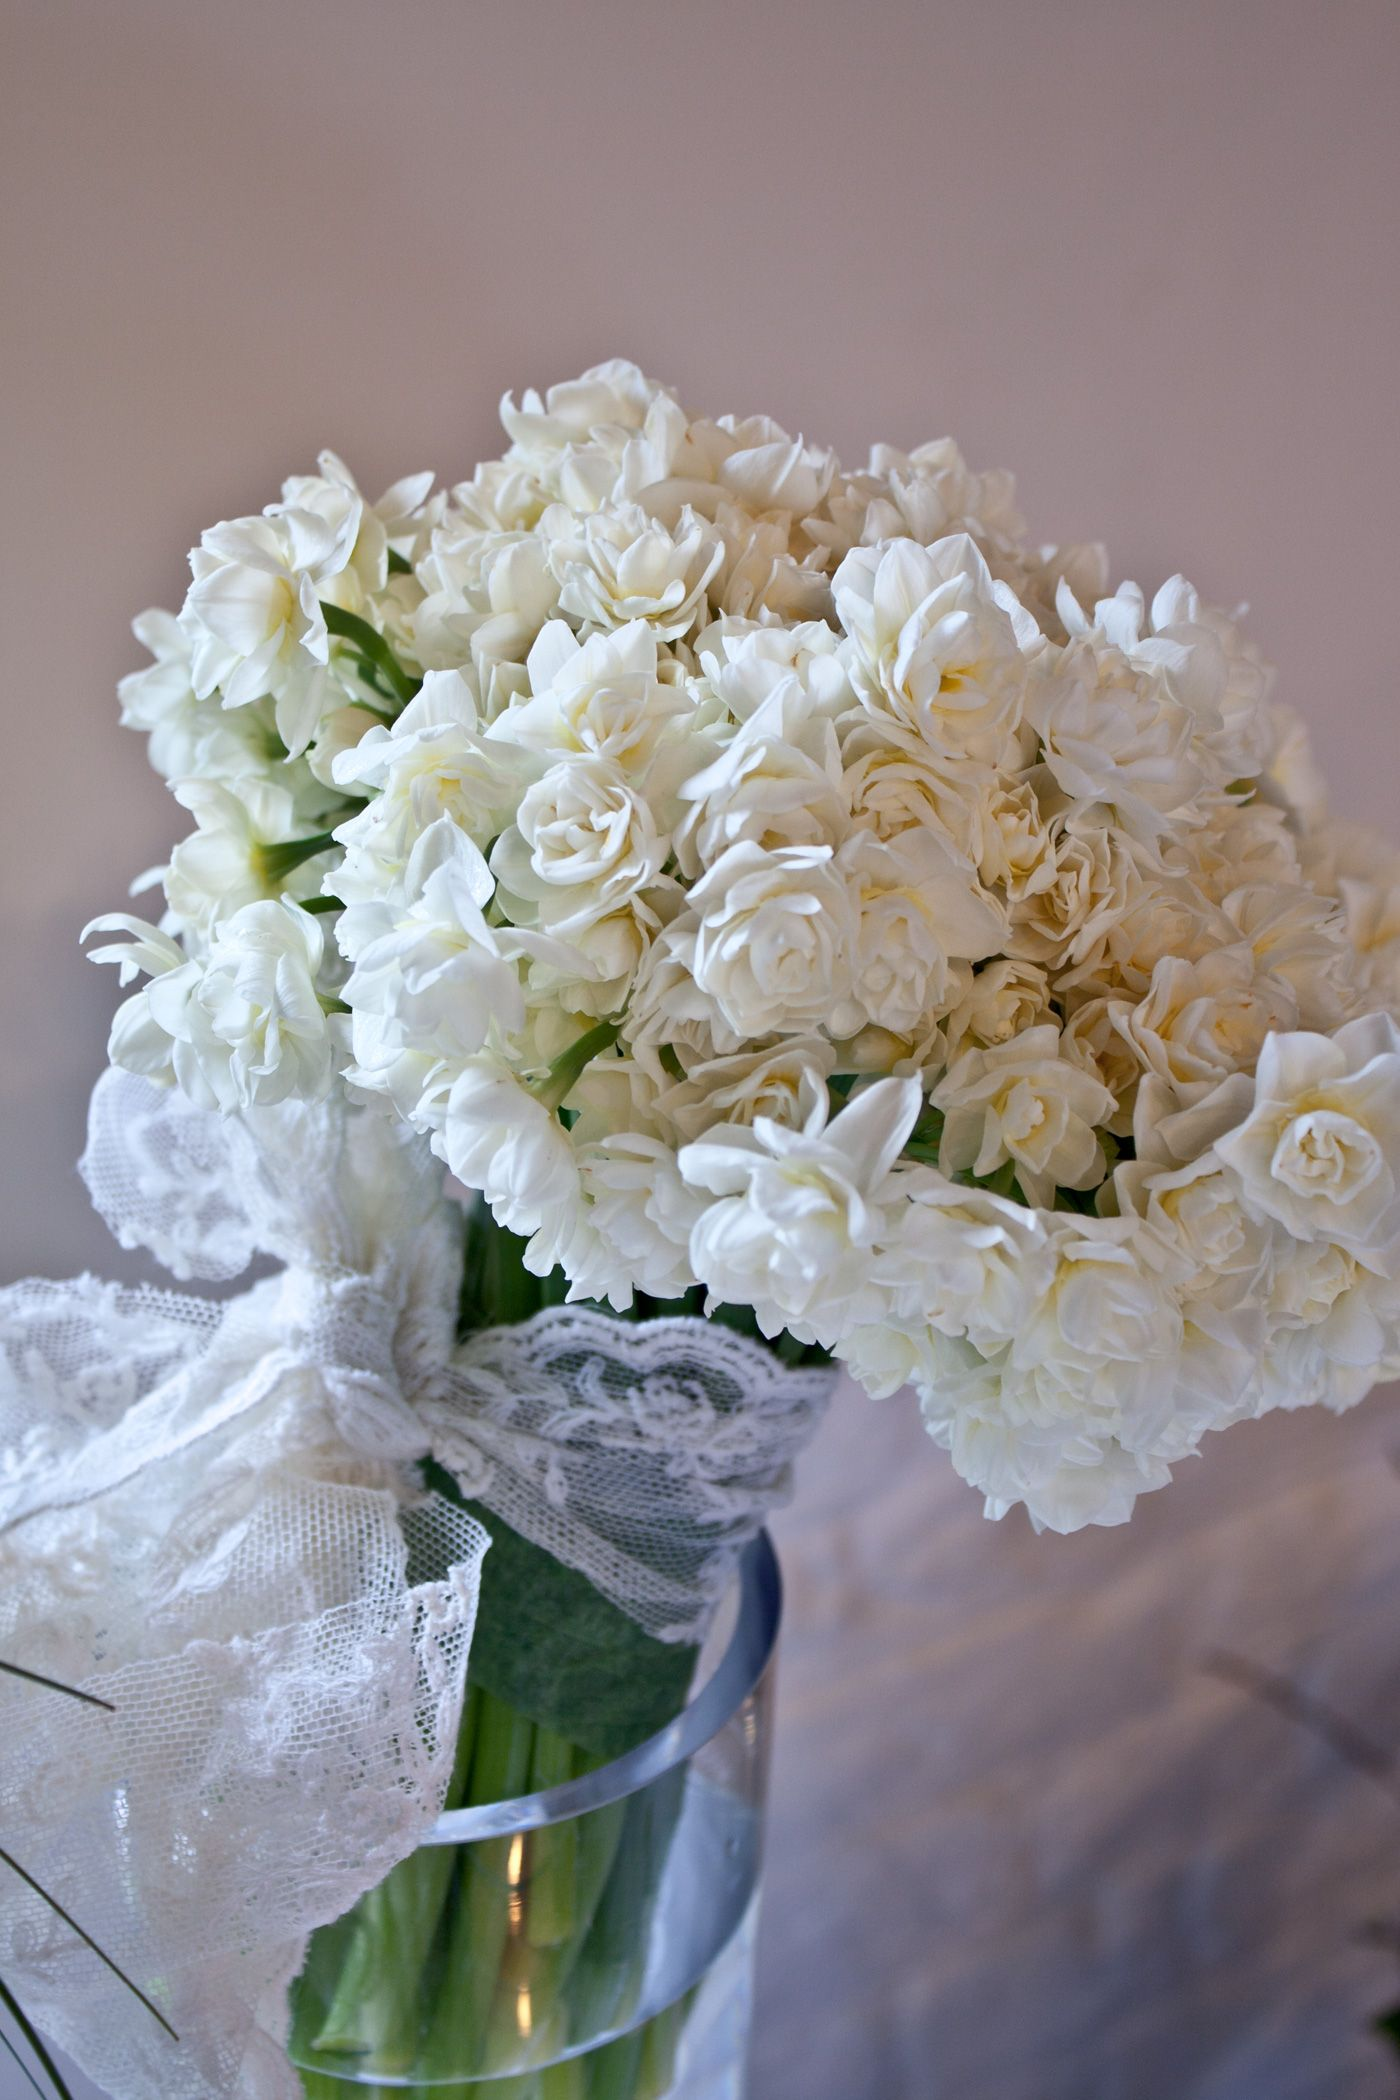 White Narcissus Bridal Bouquet I Pinned This Not For The Style Of